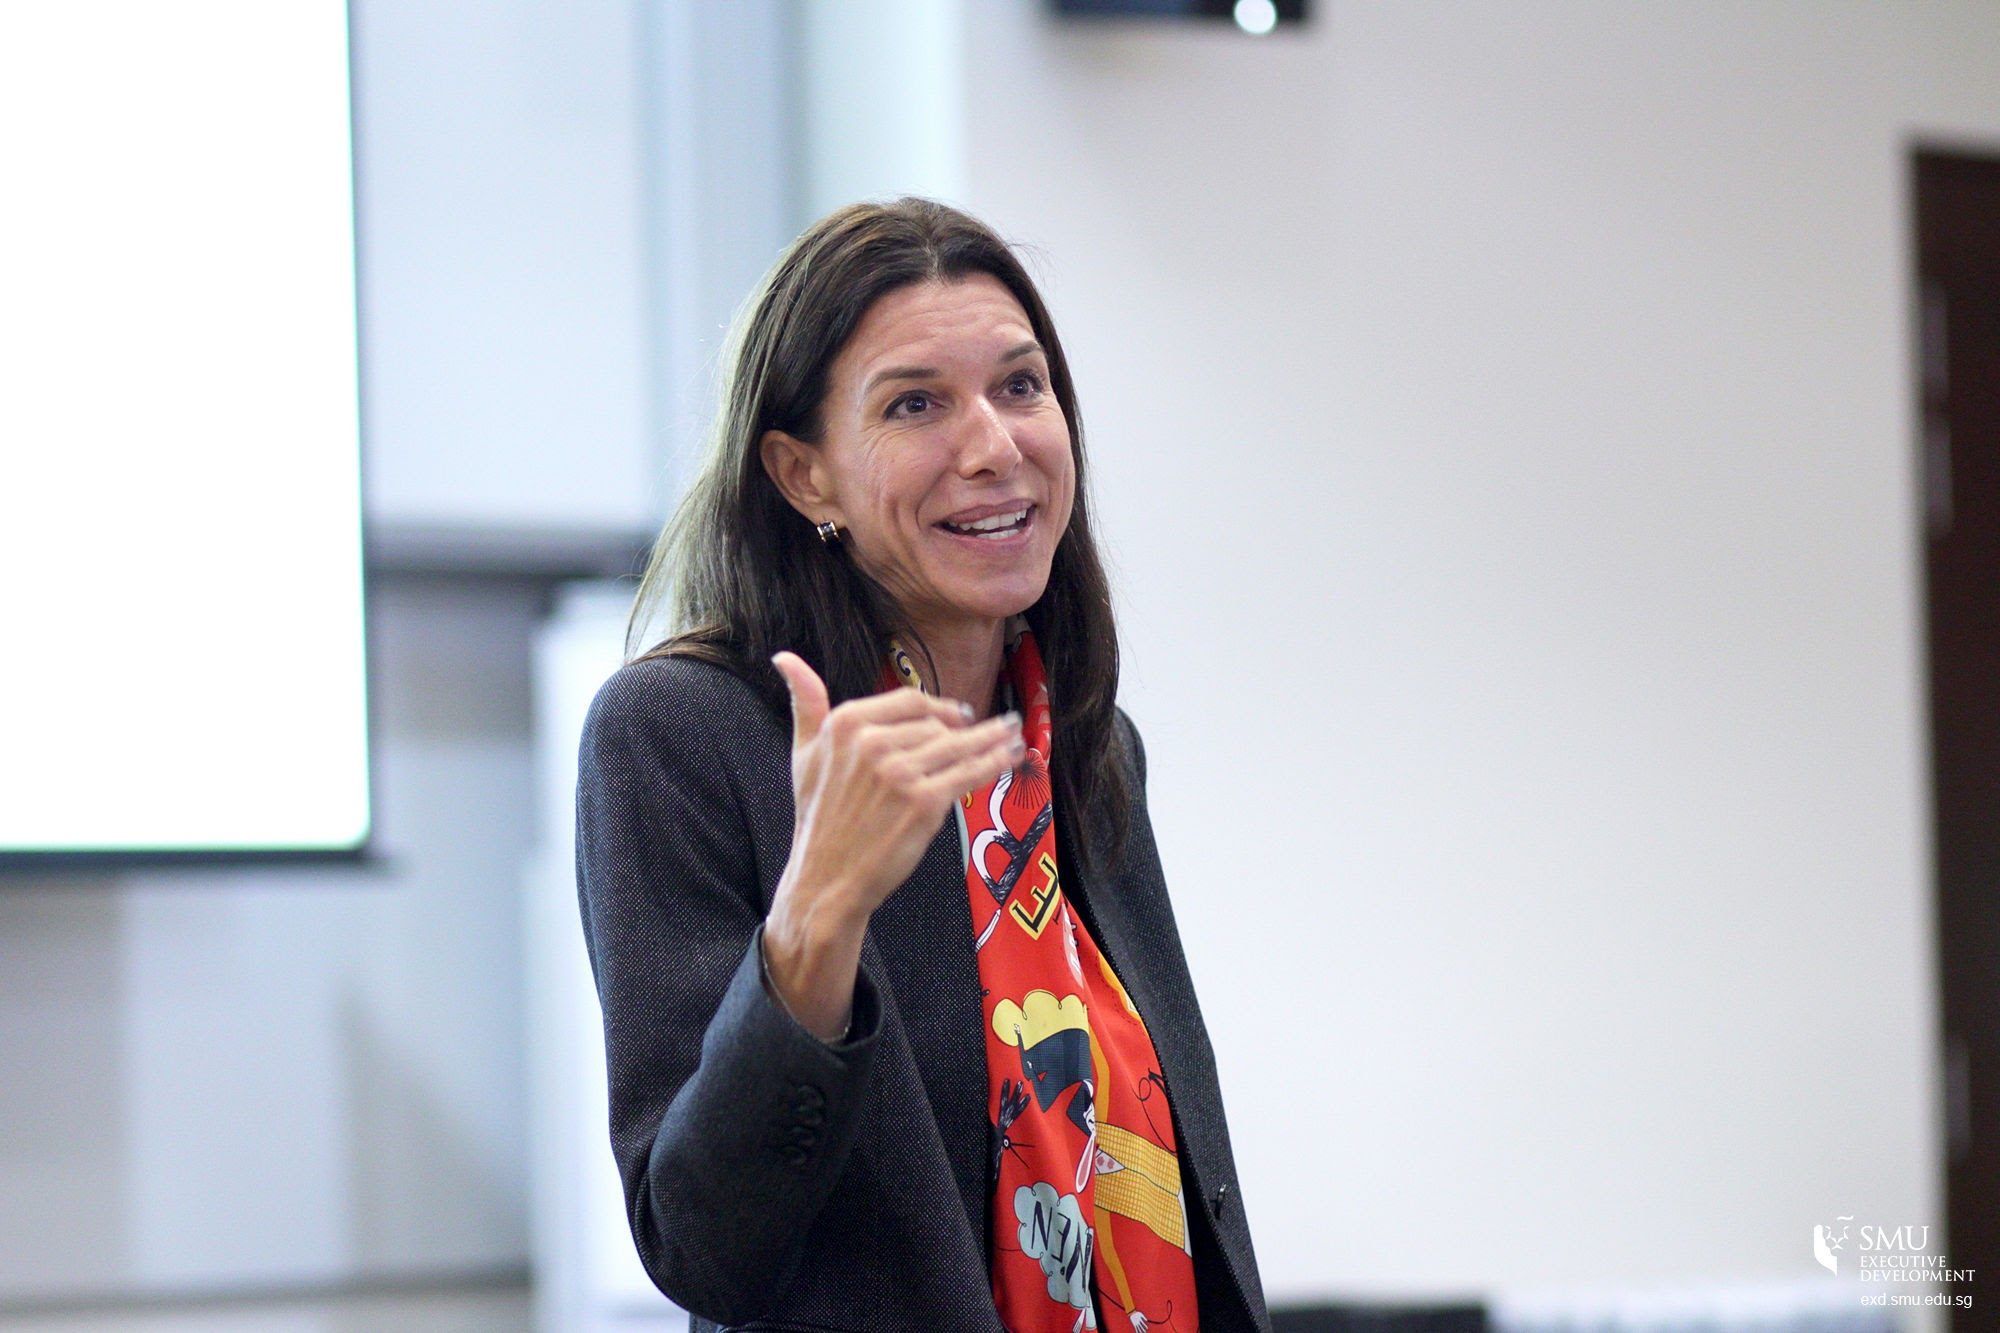 """Assistant Professor Anne-Valerie Ohlsson-Corboz spoke at SMU's Future Ready Forum 2016 on """"Learning from Expert Entrepreneurs: Creative Problem-solving in Organisational Settings"""""""